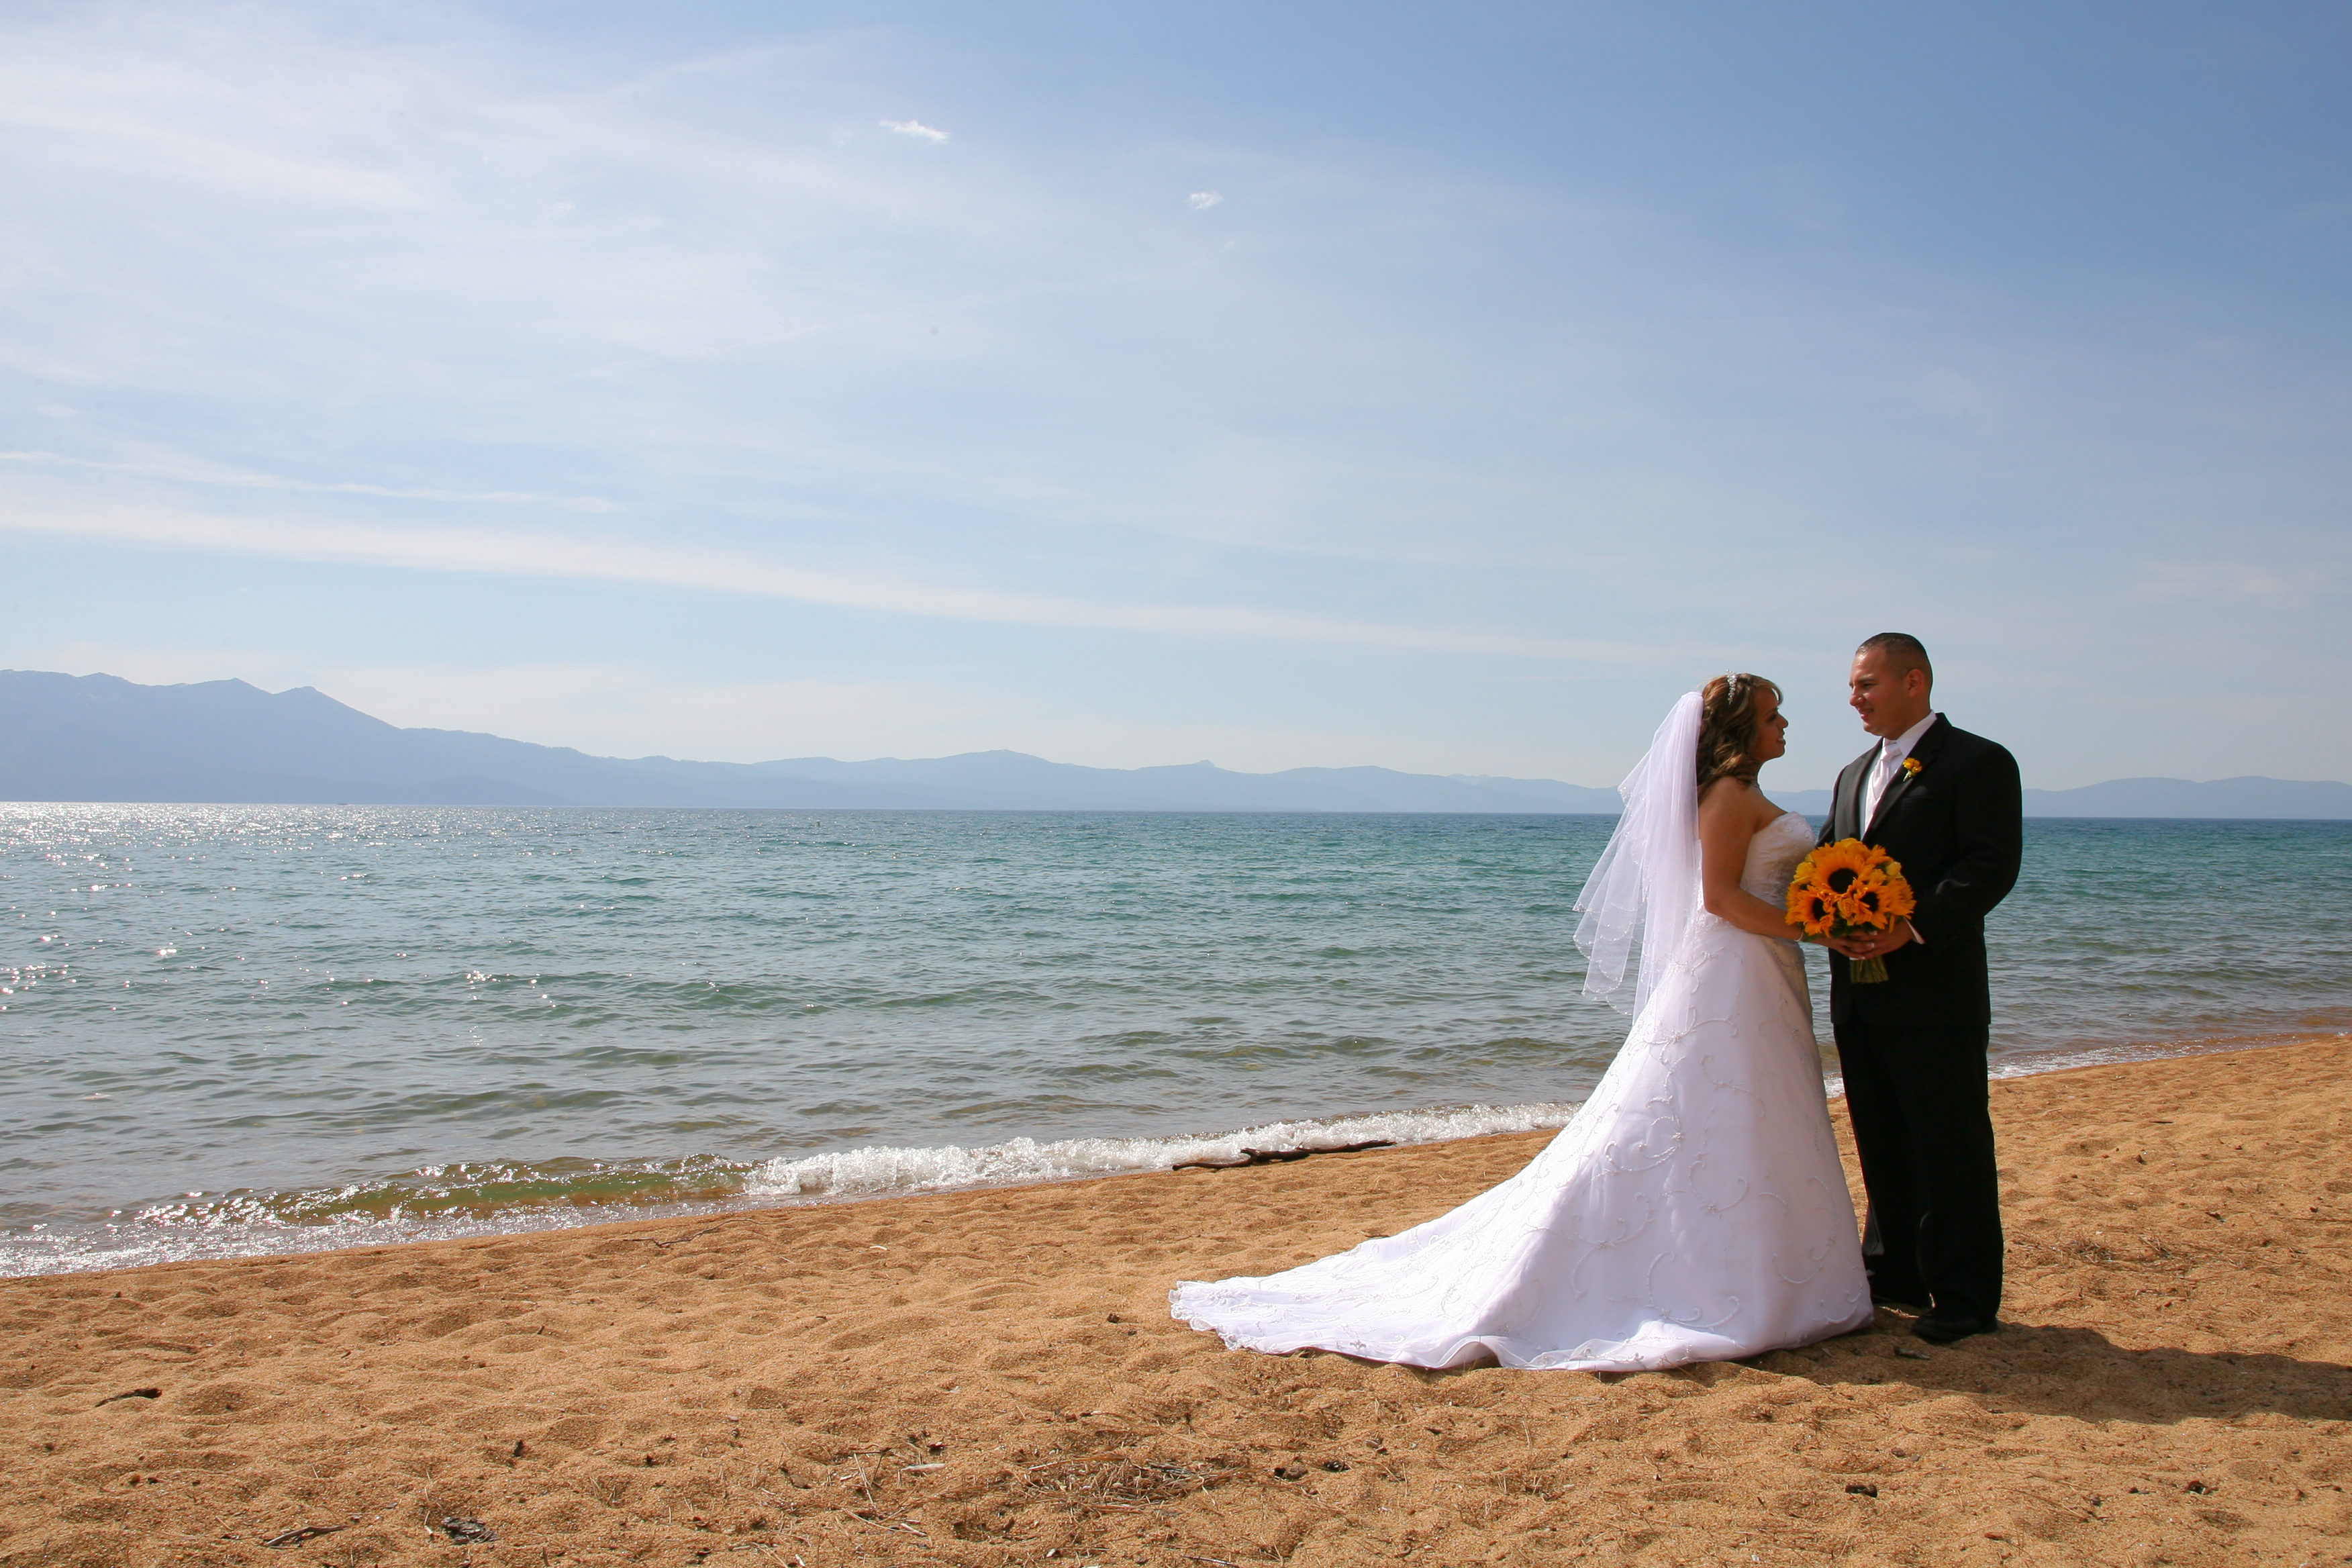 Bride and groom on the beach.